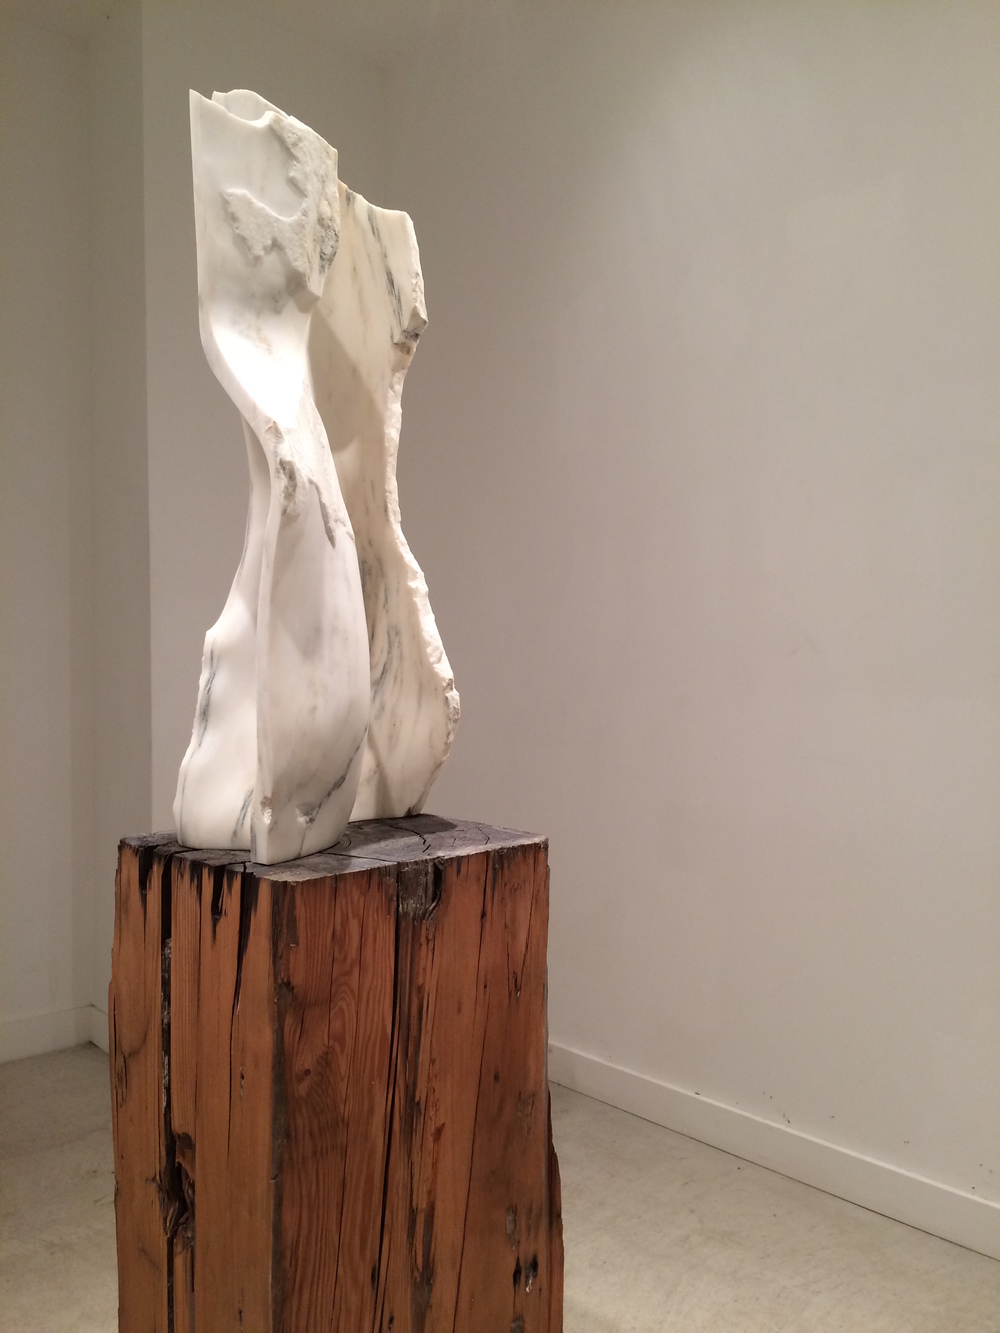 "David Perrett, Figura, Alabama Marble and Douglas Fir, 15"" x 15"" x 72"", 2012"